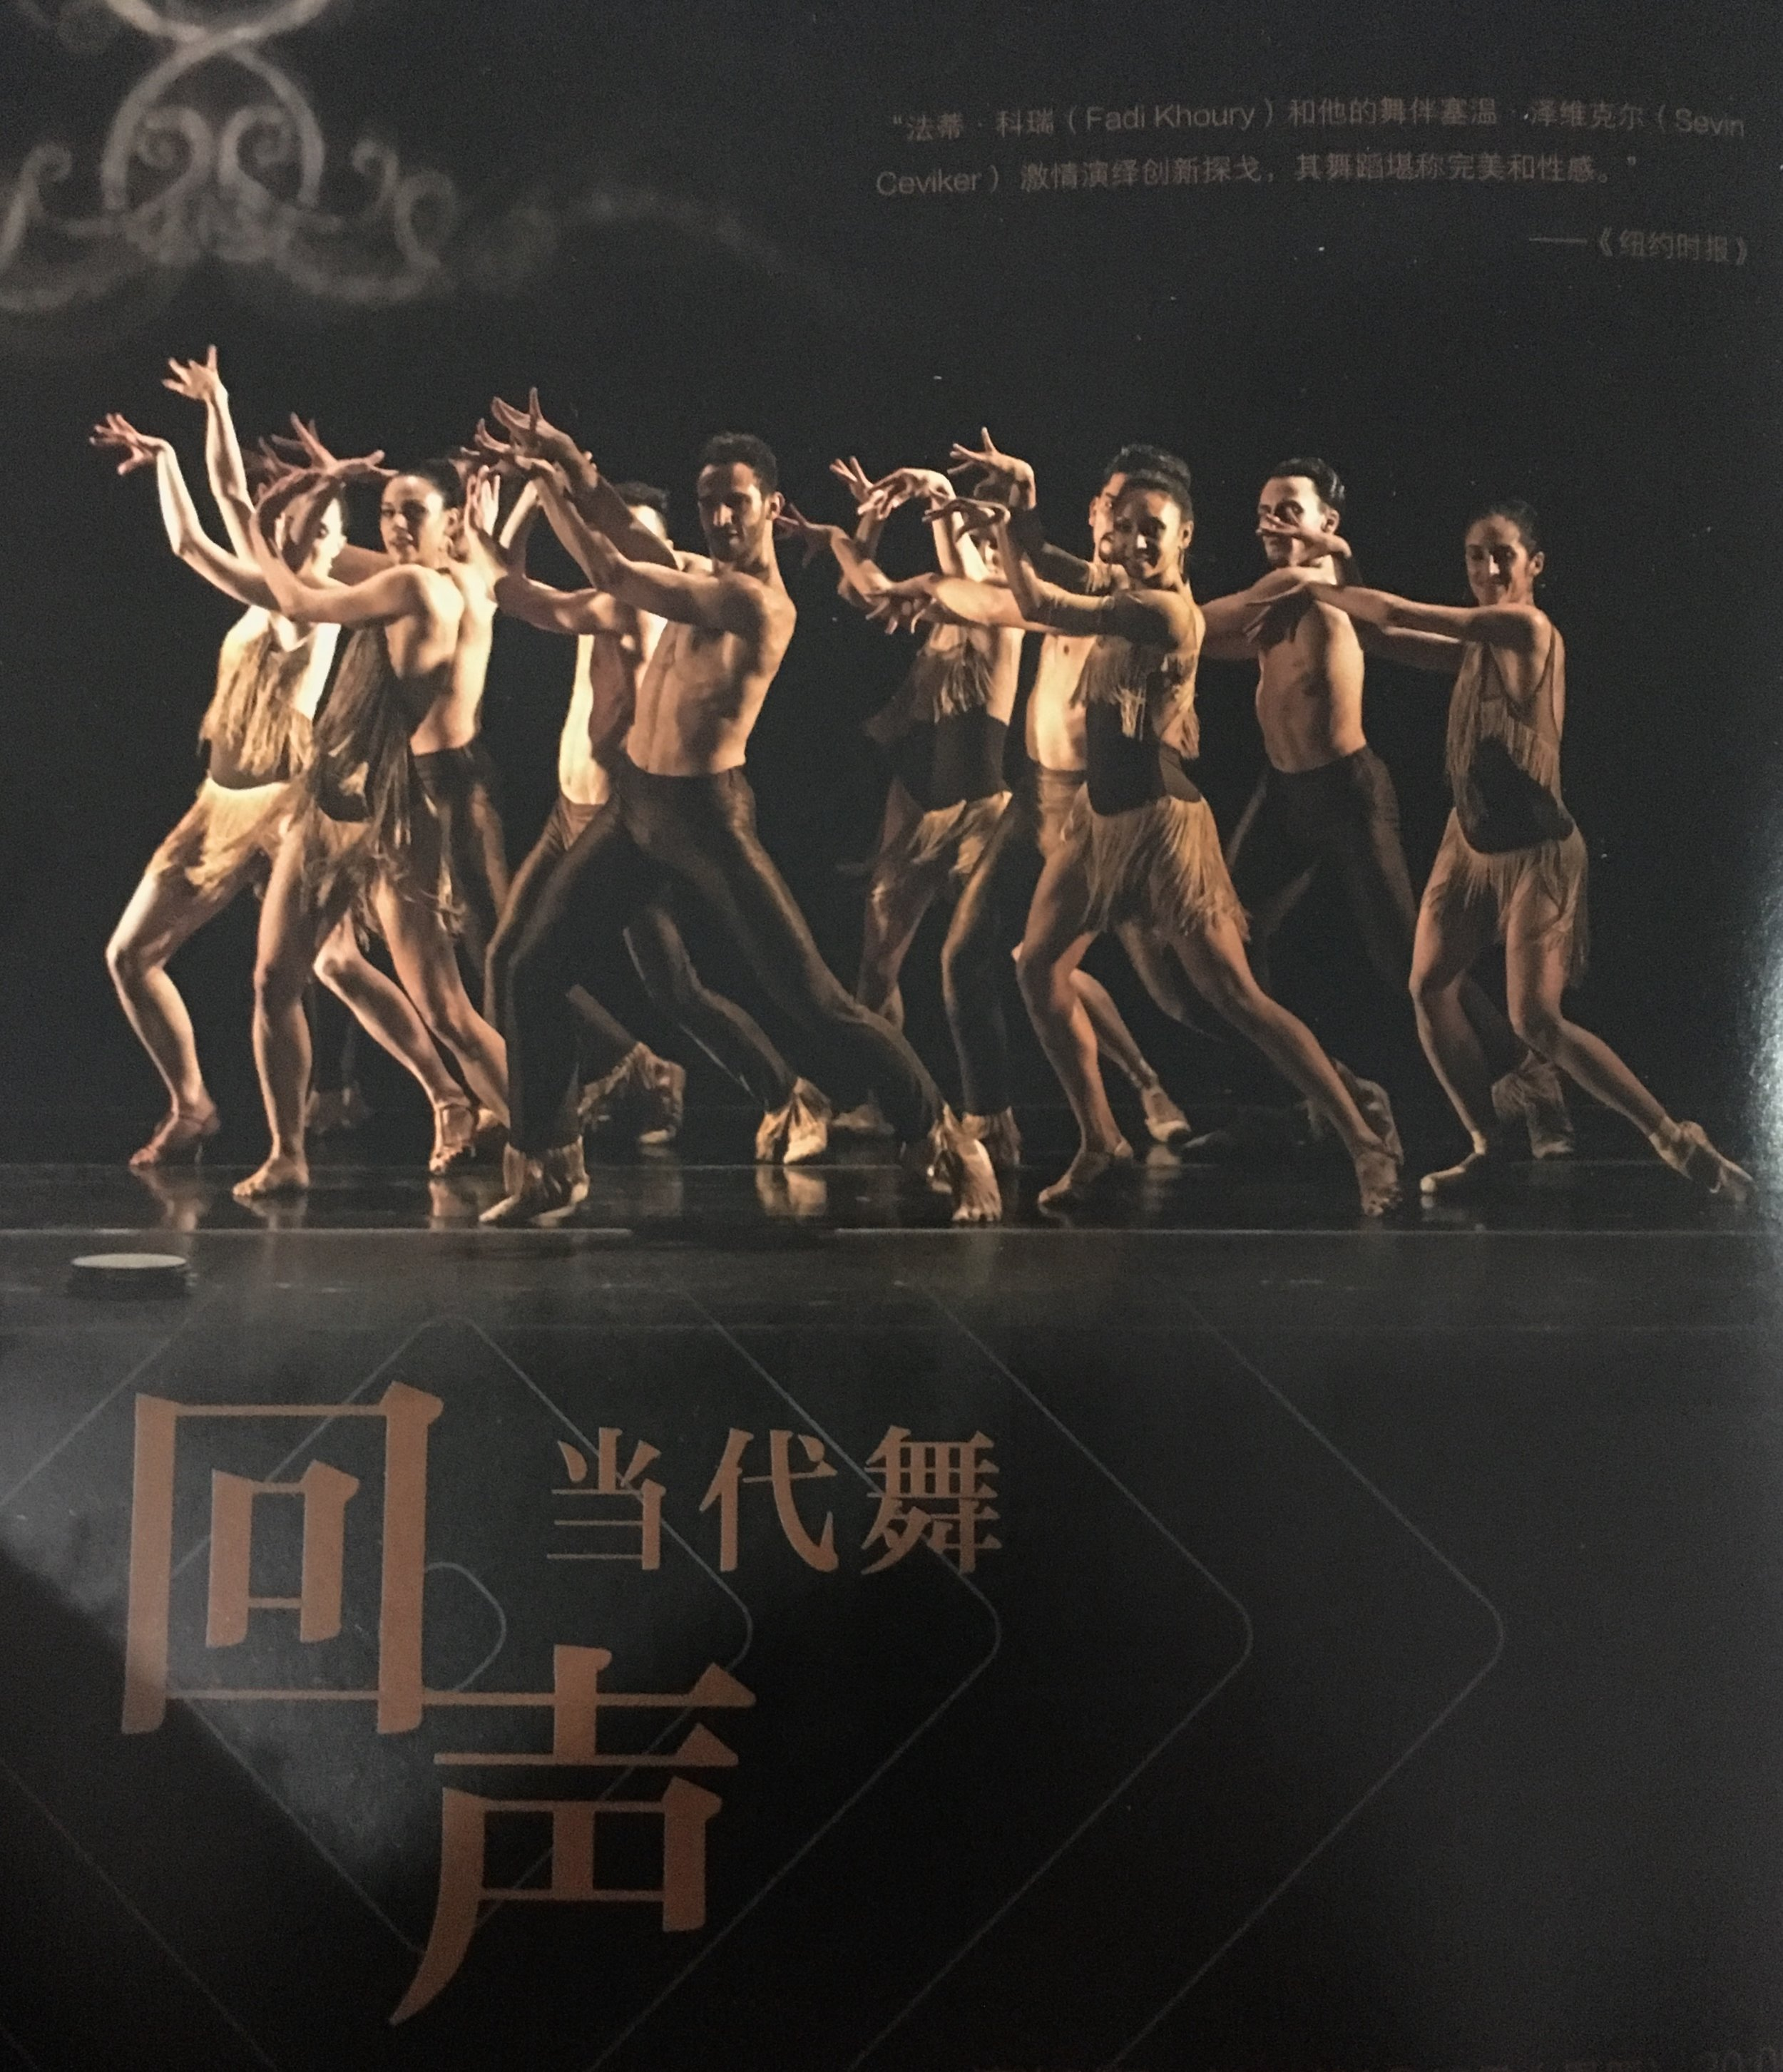 China Tour withFJK Dance - I had the honor to tour in China for two months in 2017. The company, led by Fadi J. Khoury fuses ballet, contemporary, ballroom and middle eastern dance. We were priviledged to set foot on some of the biggest theaters in the world and dance for 31 different audiences.